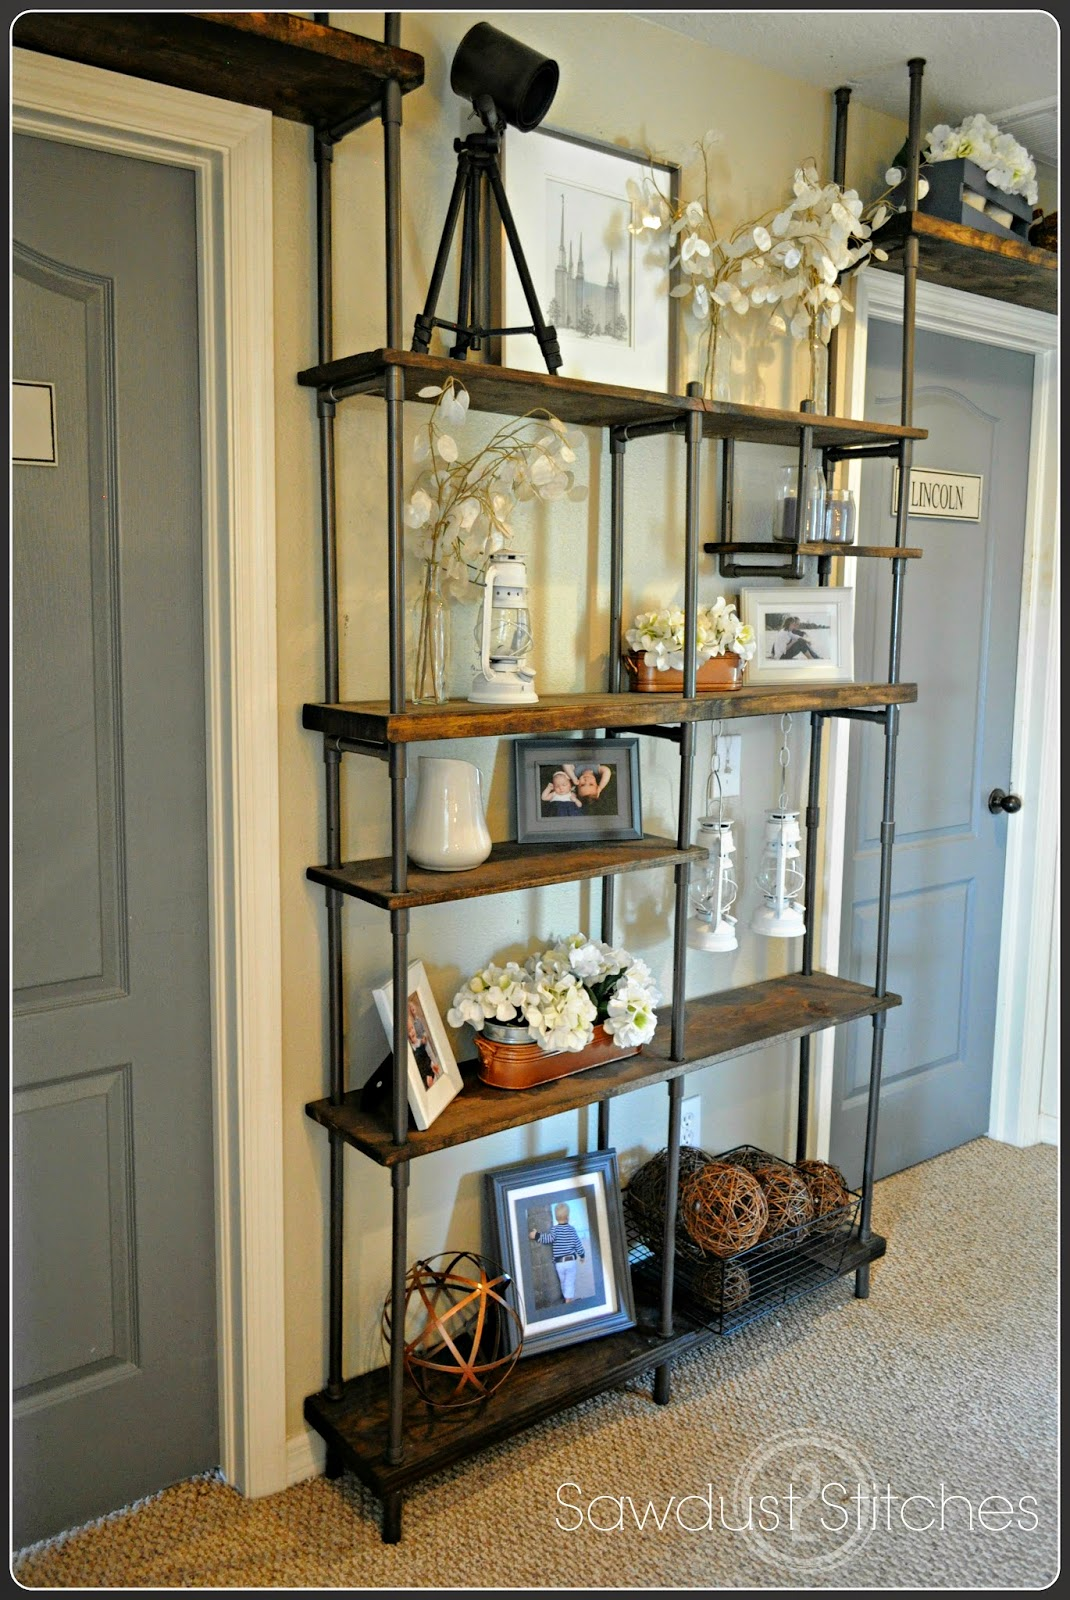 Remodelaholic Build a Budget Friendly Industrial Shelf  : build an industrial shelf using PVC pipe Sawdust 2 Stitches on Remodelaholic from remodelaholic.com size 1070 x 1600 jpeg 373kB